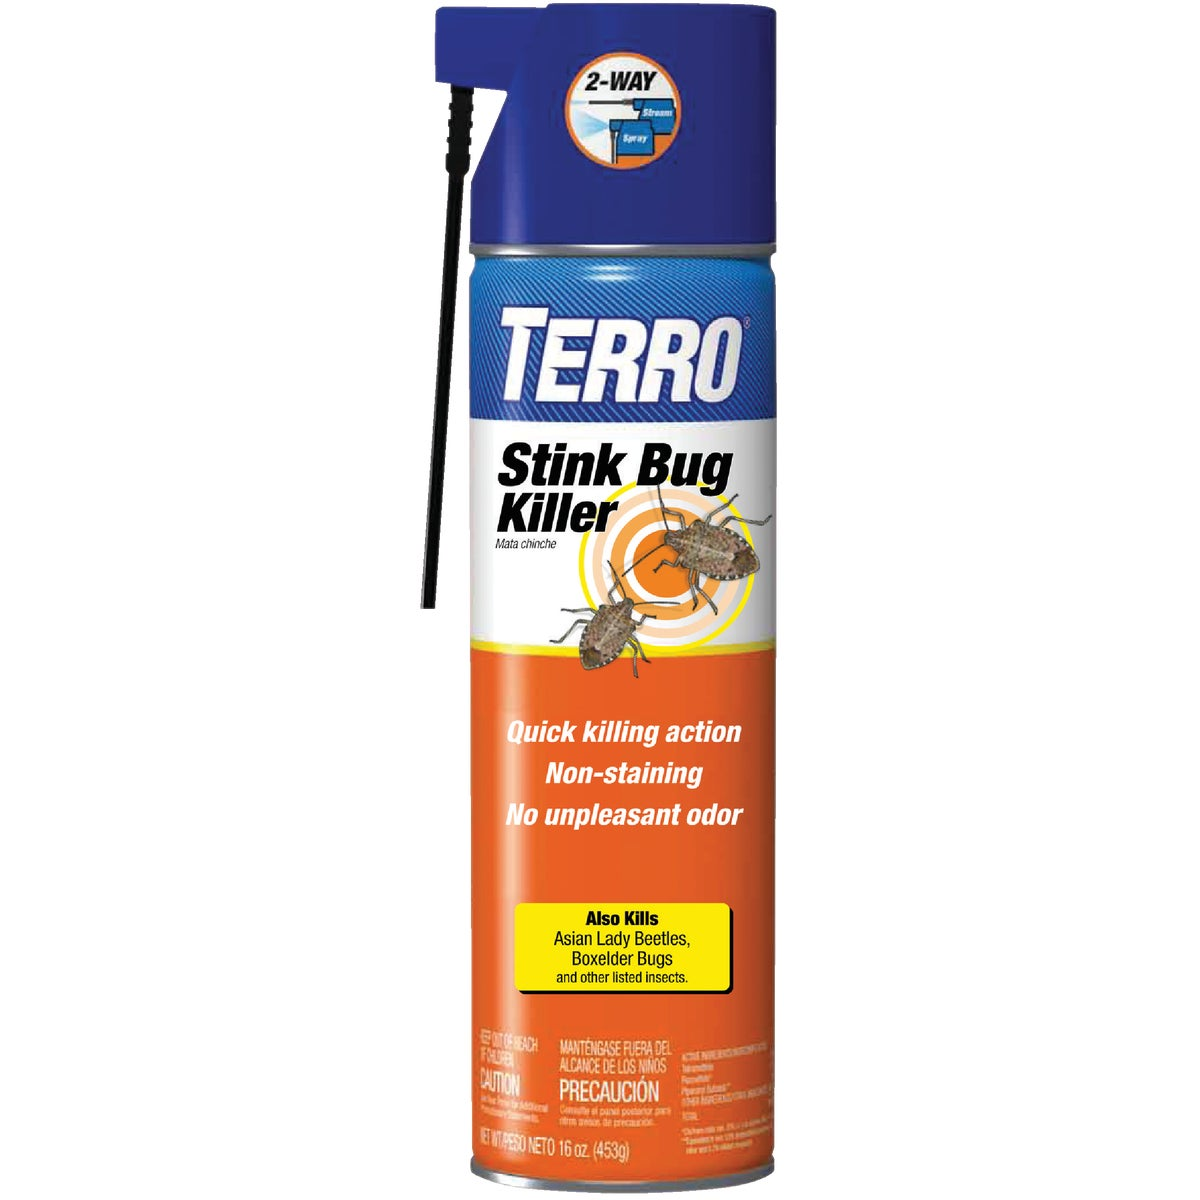 TERRO STINK BUG AEROSOL - T3500 by Woodstream Corp